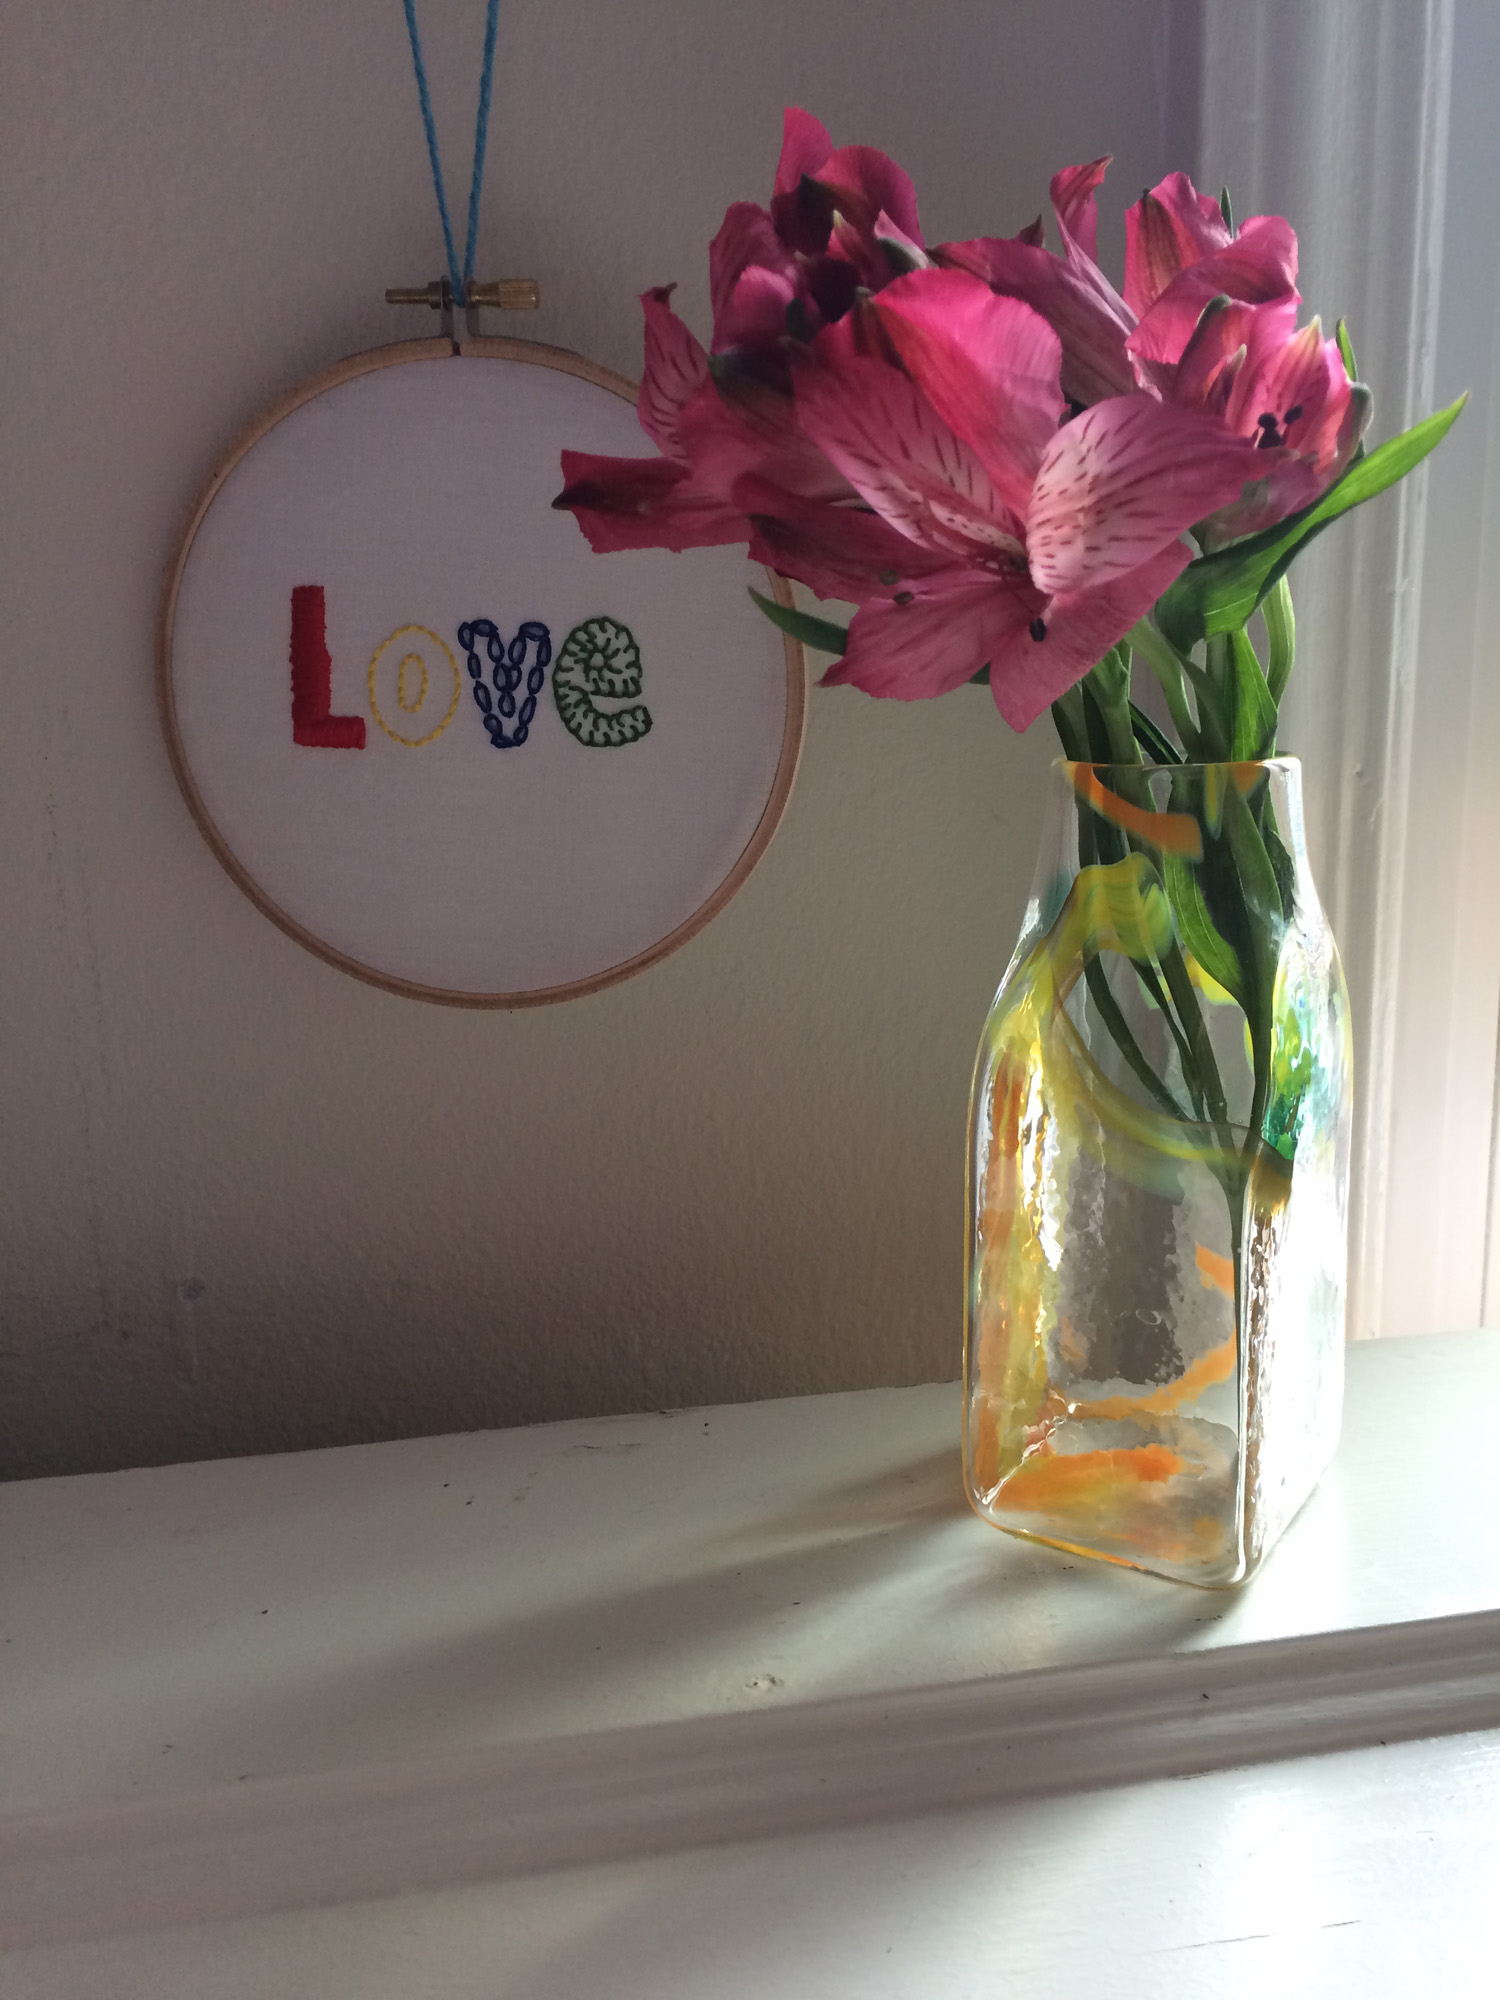 Orange and Yellow Brickyard Vase by Wunder Around_flowersjpg.jpg